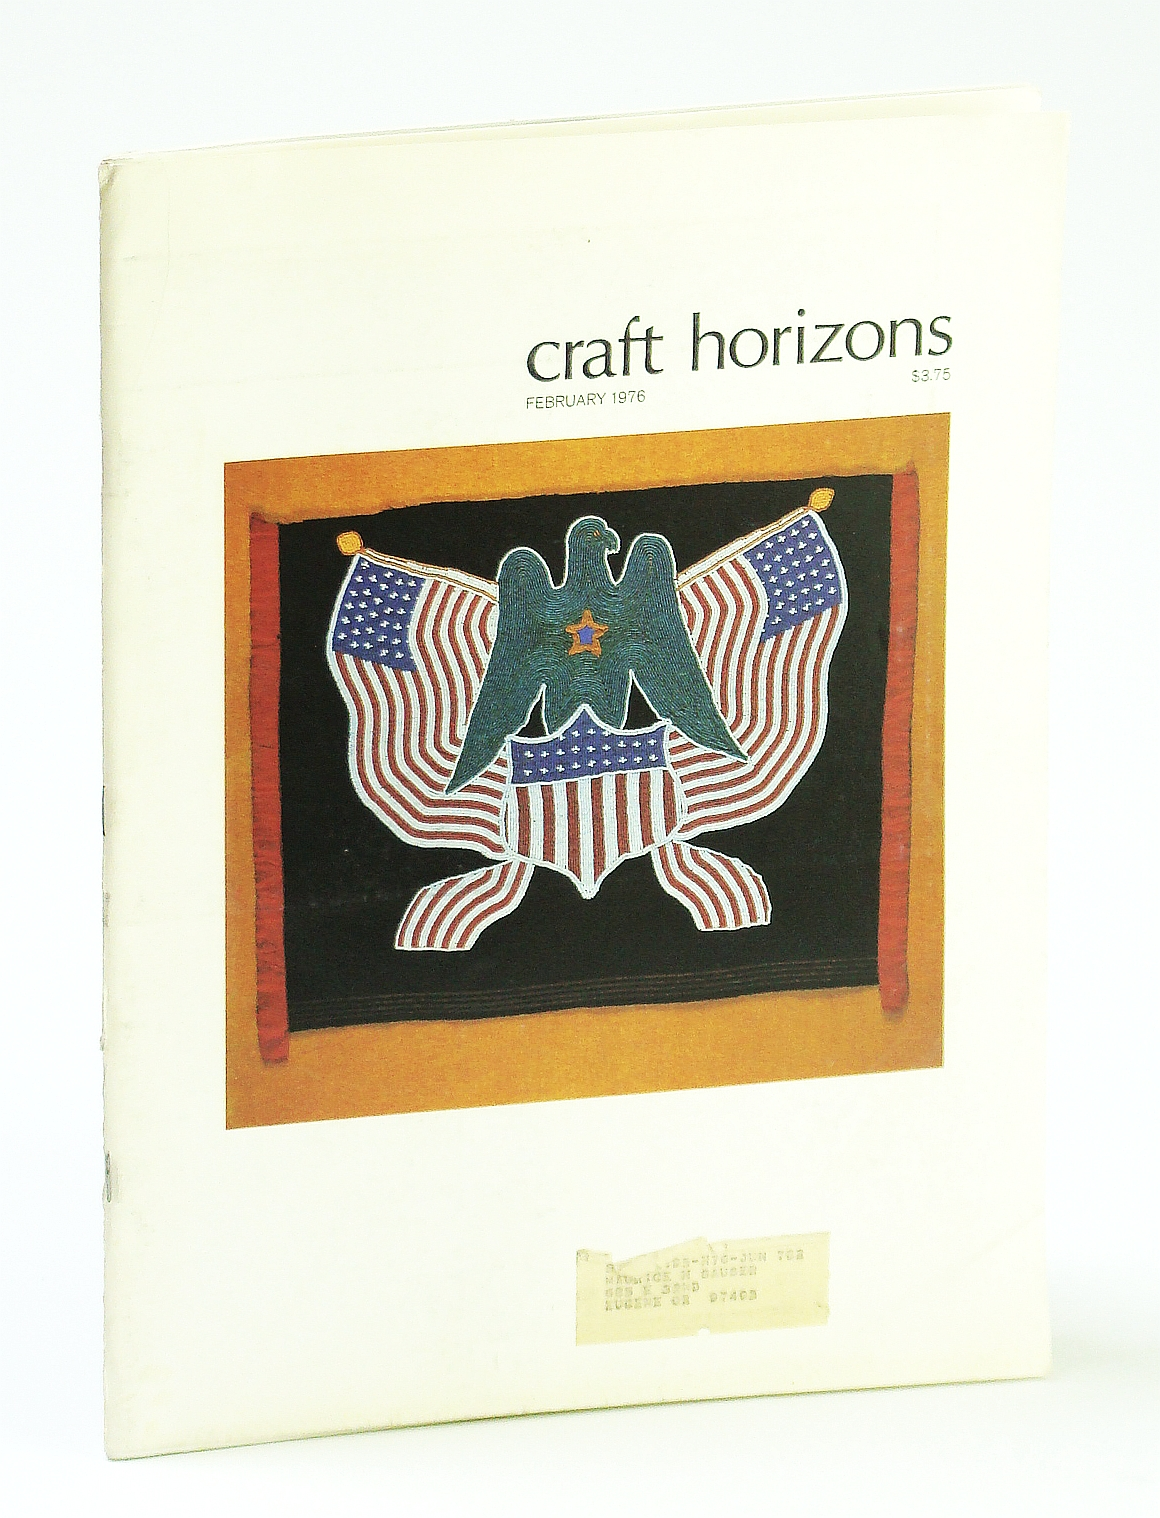 Image for Craft Horizons (Magazine) of the American Craft Council, February (Feb.) 1976 - Paper Constructions of Neda Al-Hilali / Robert Strini